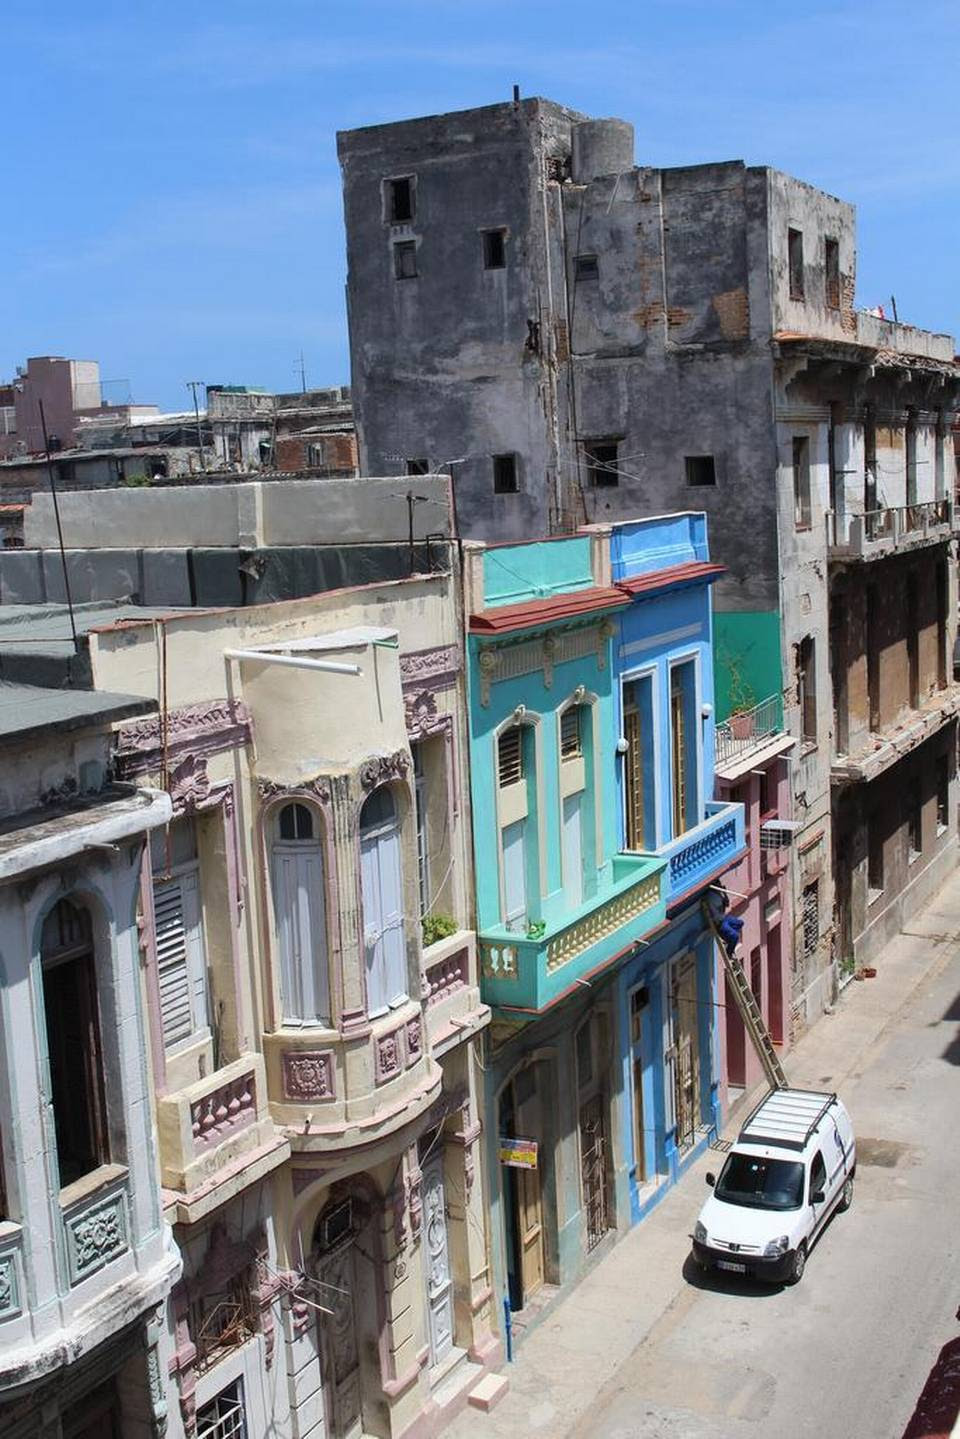 Fresh paint on residential buildings in Havana is often a sign that the homes are being renovated and prepared for rentals.